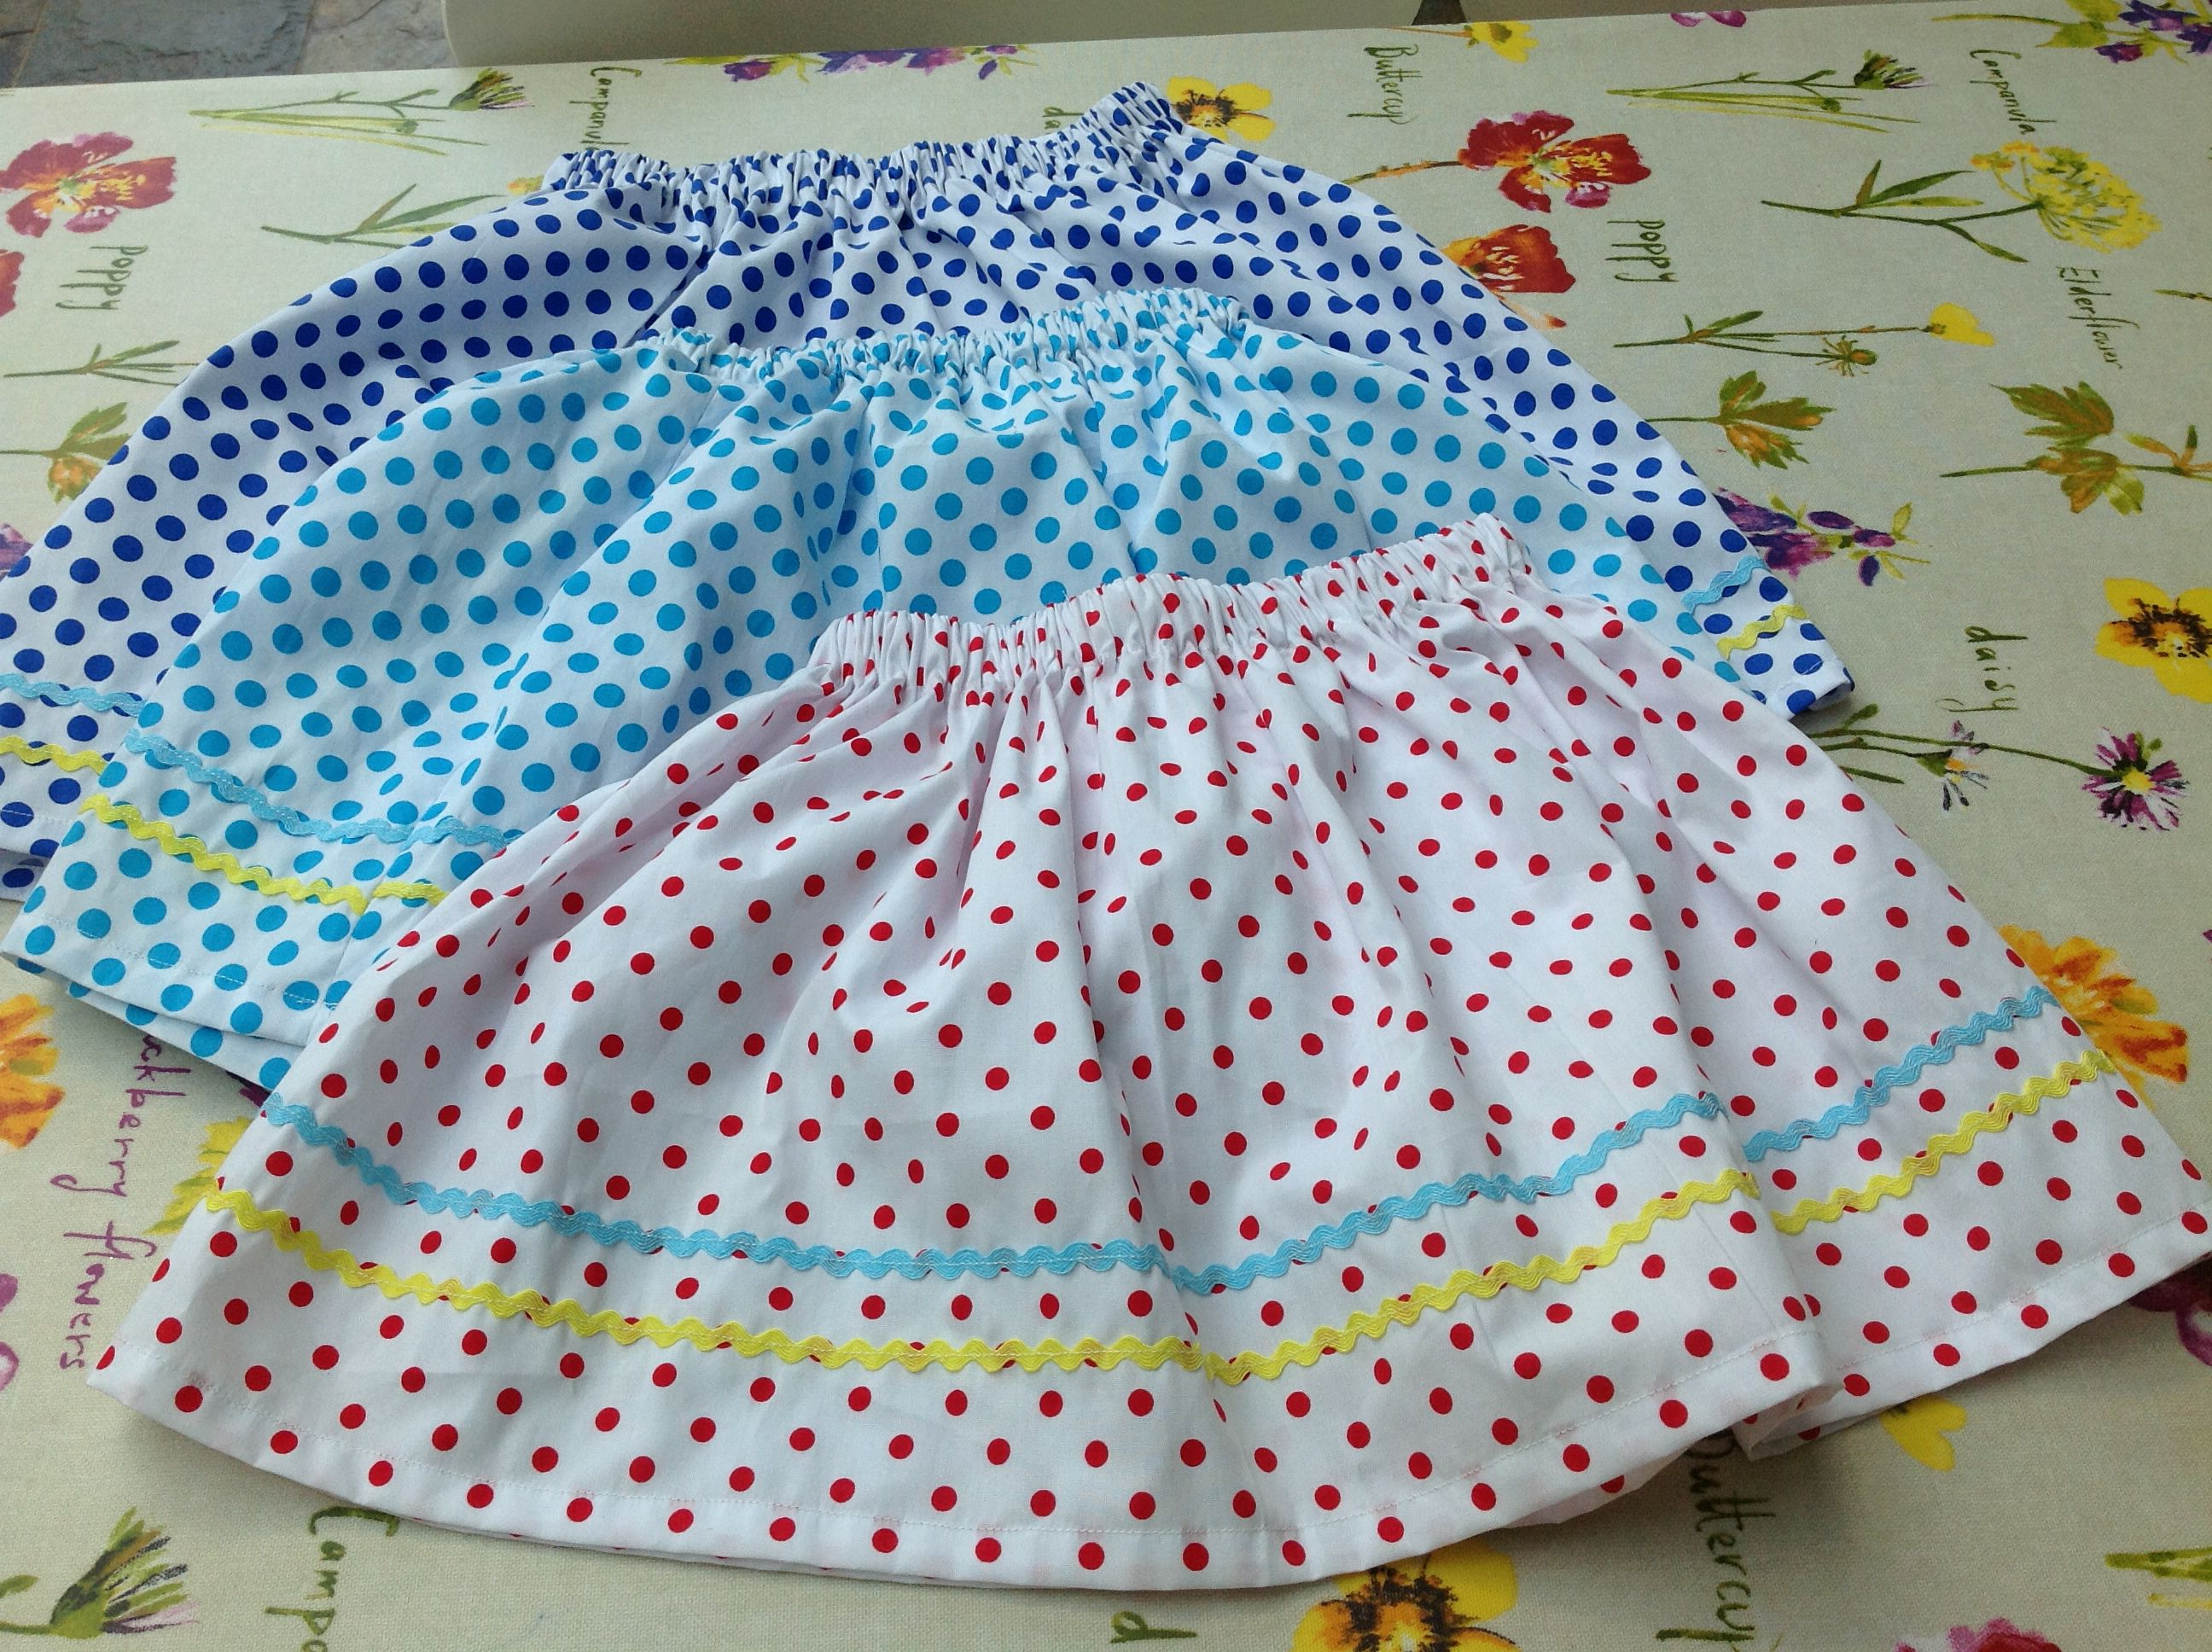 Holiday skirts for 3 friends